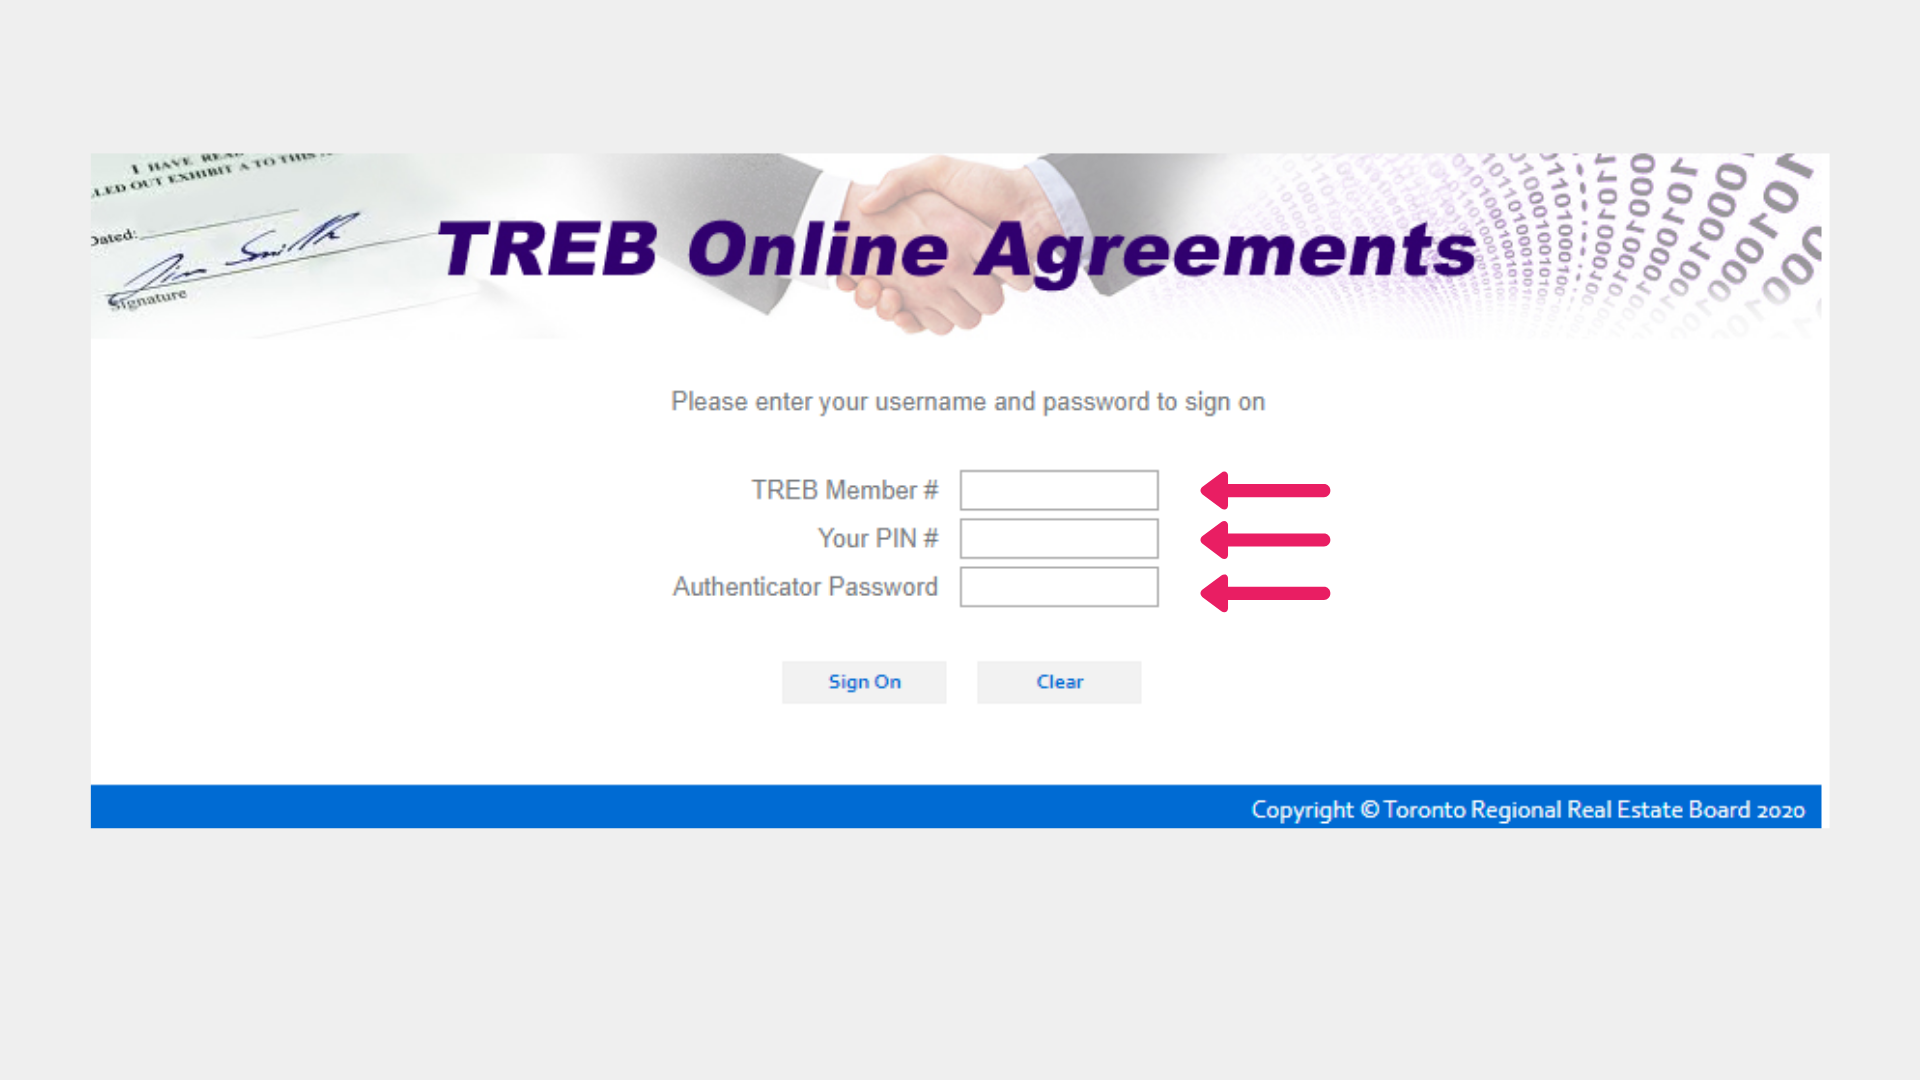 TRREB_Online_Agreements_-_Guideline__3_.png